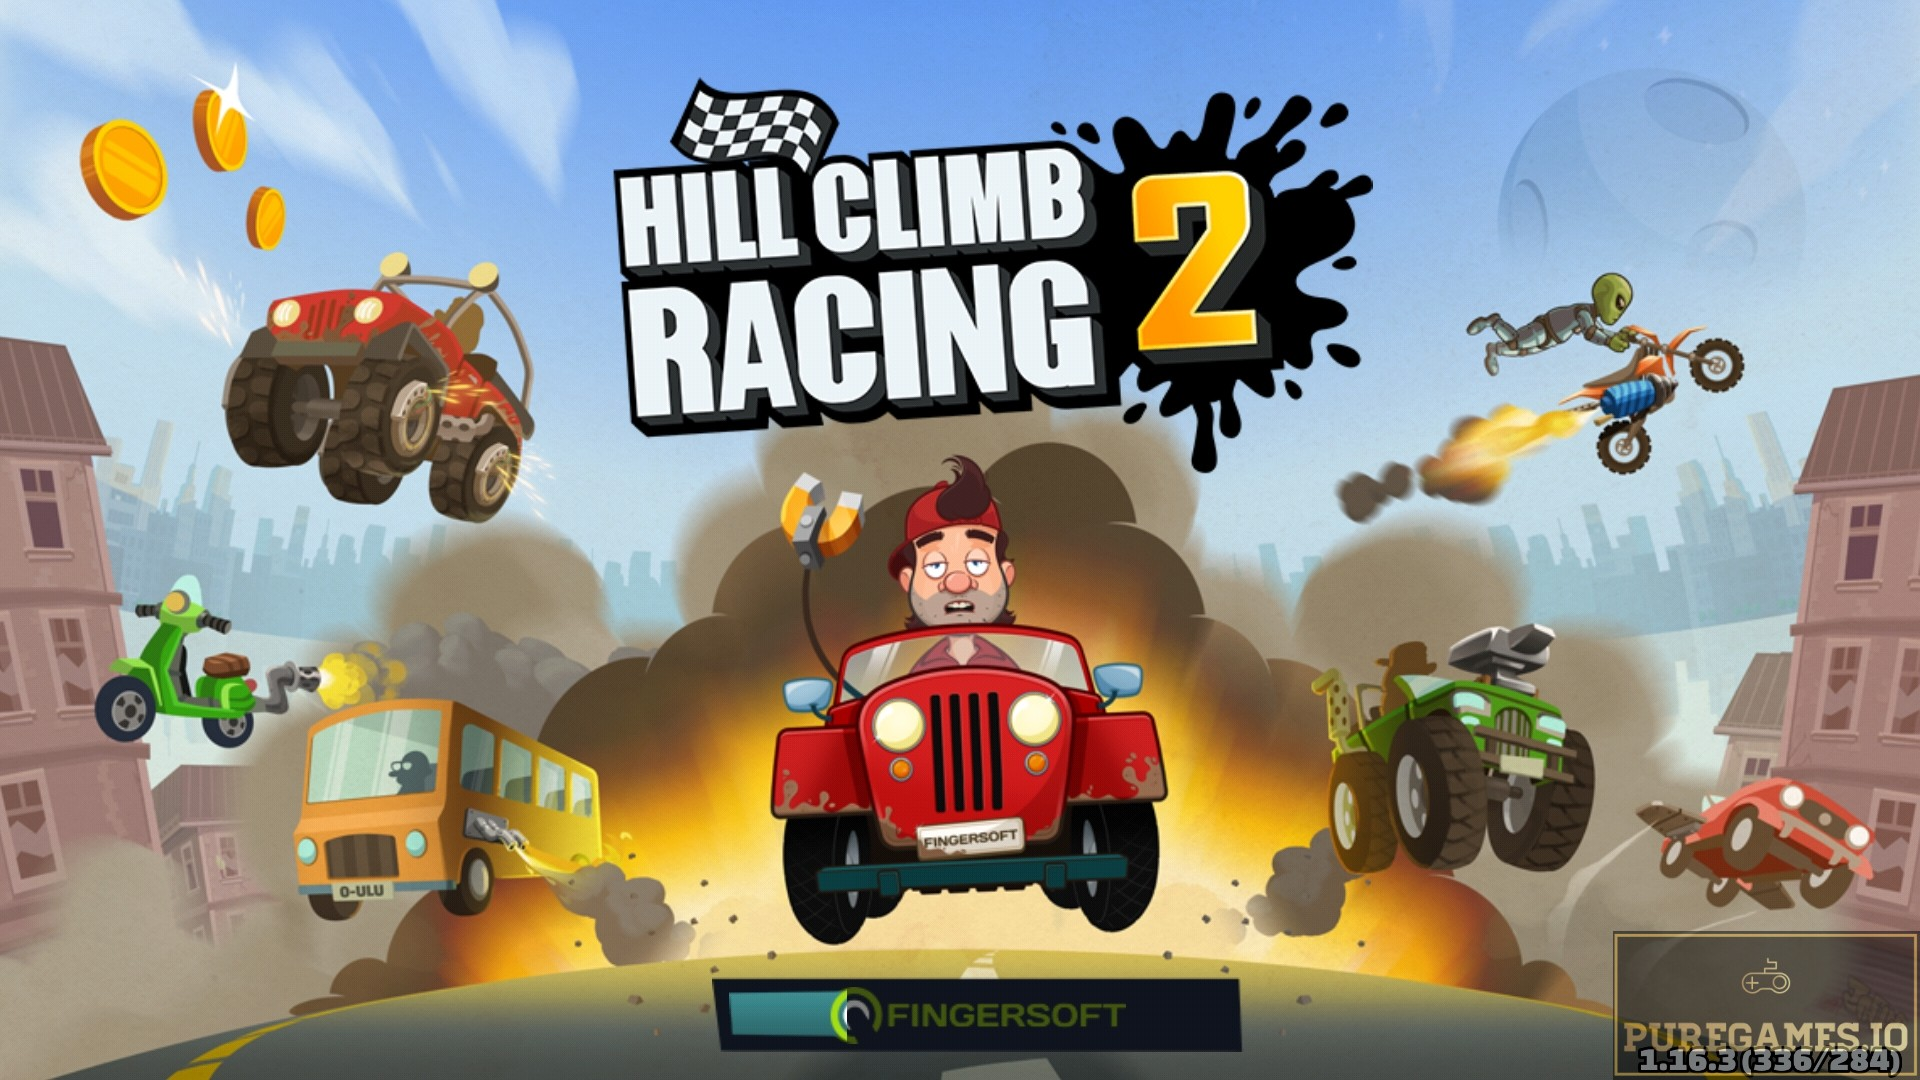 Download Hill Climb Racing 2 APK - For Android and iOS 12